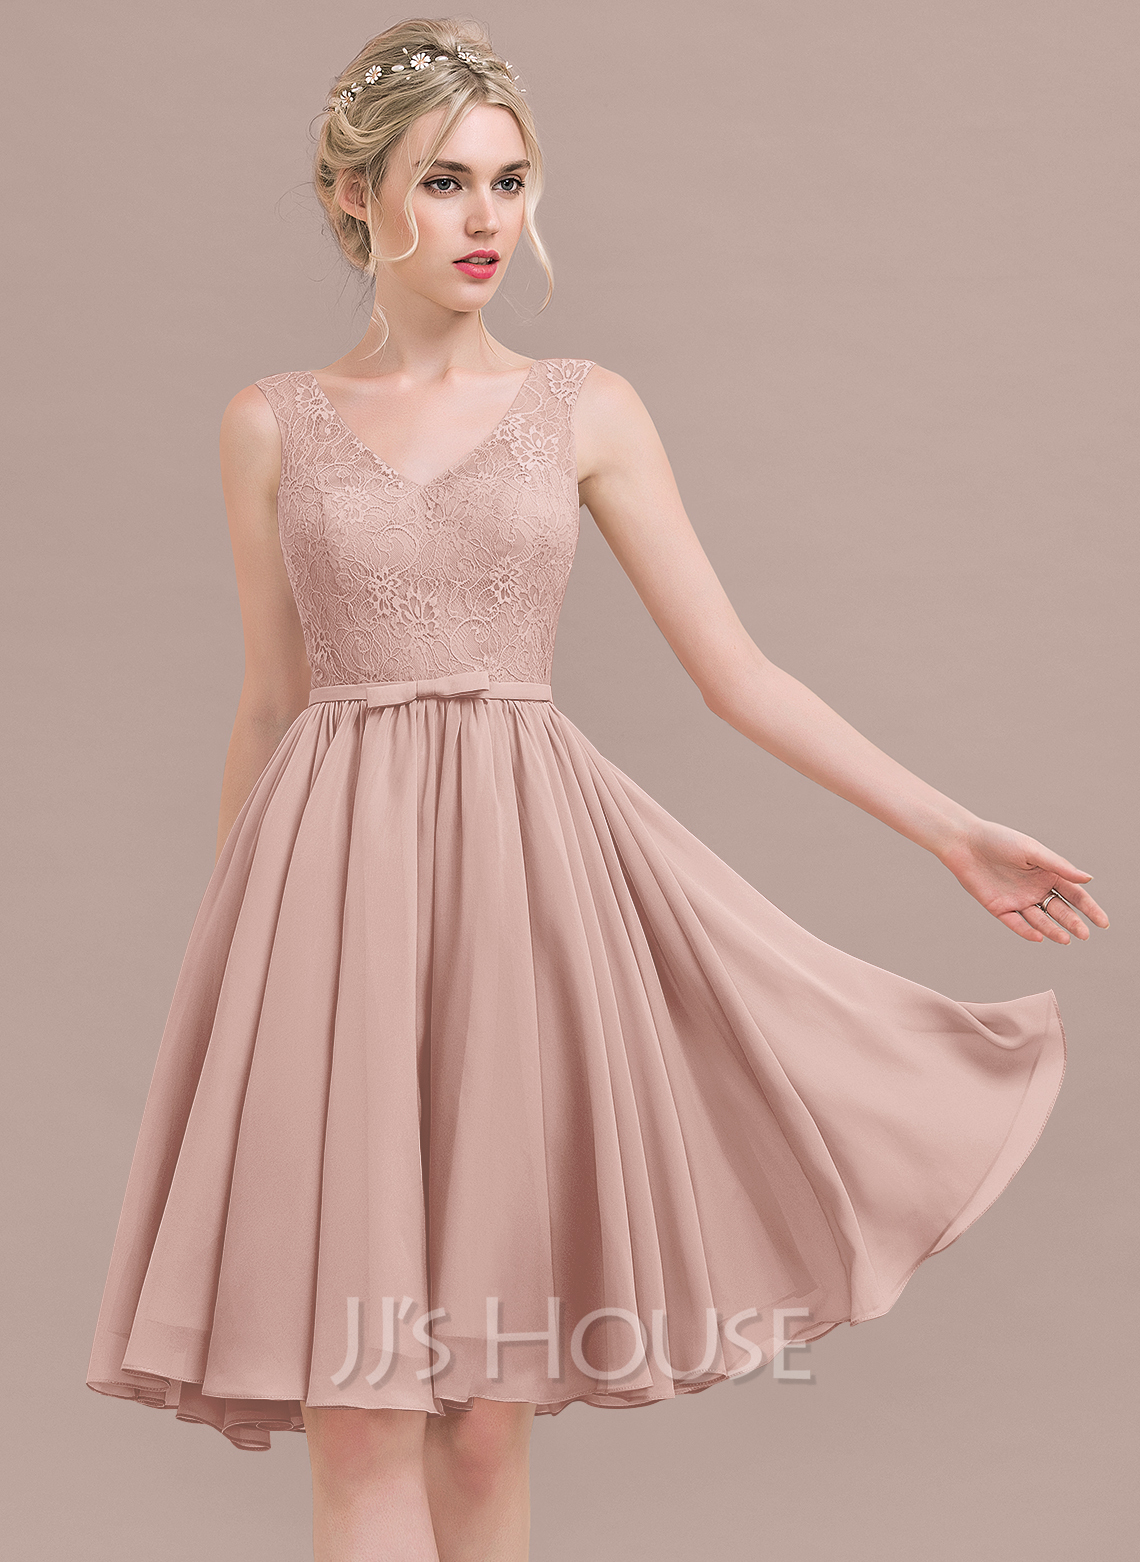 e37259fa1748 A-Line/Princess V-neck Knee-Length Chiffon Lace Bridesmaid Dress With.  Loading zoom